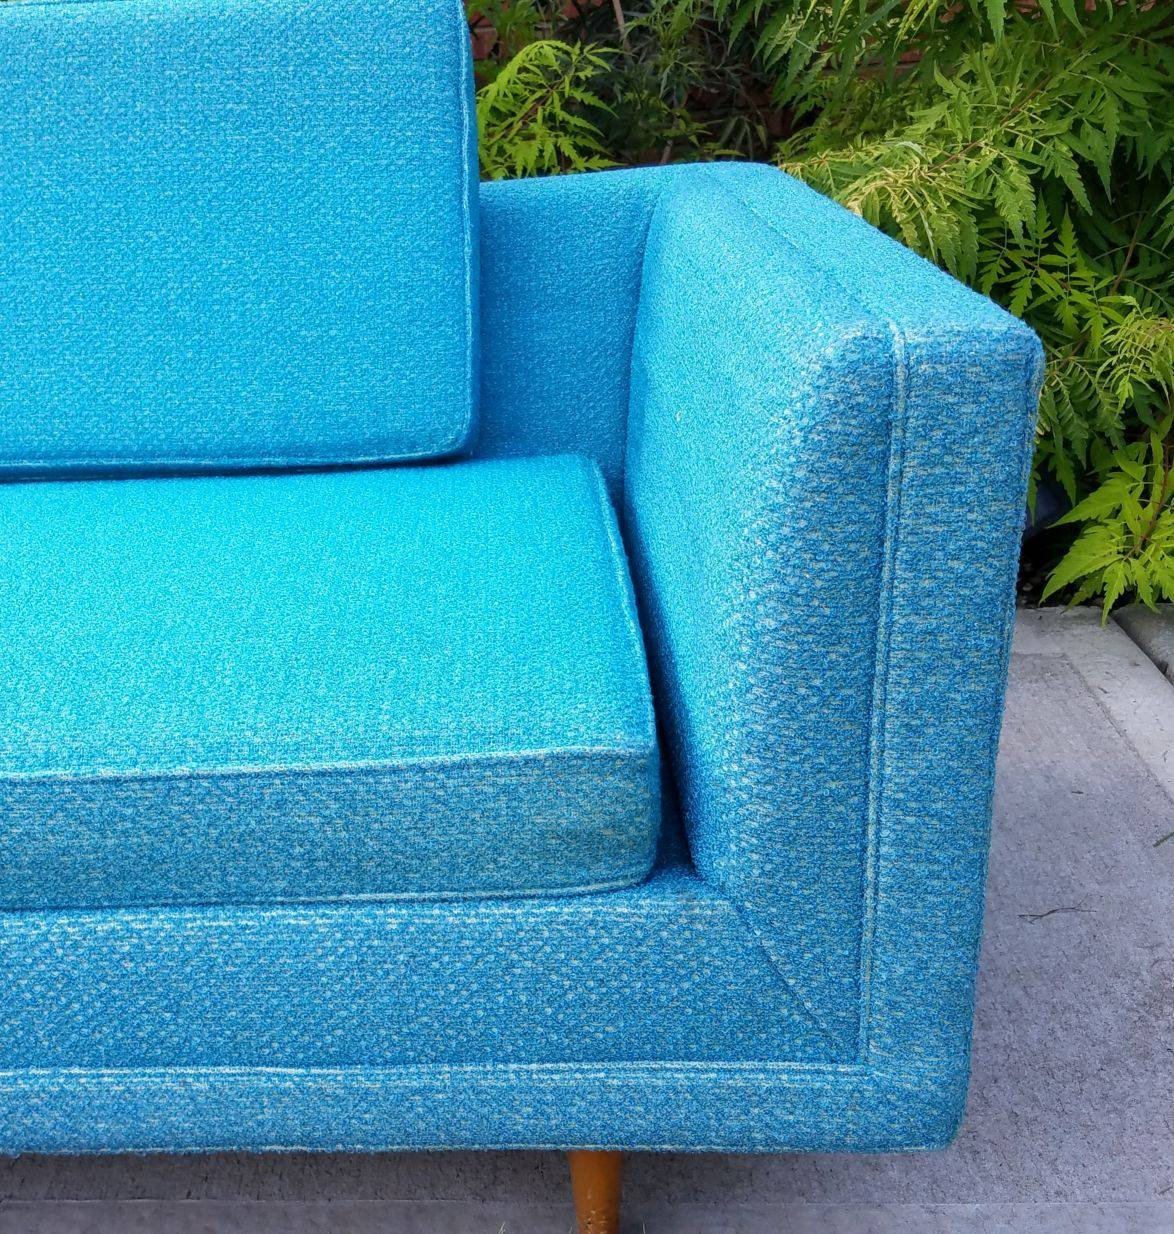 Turquoise Mid Century Sofa in Like New Condition_6